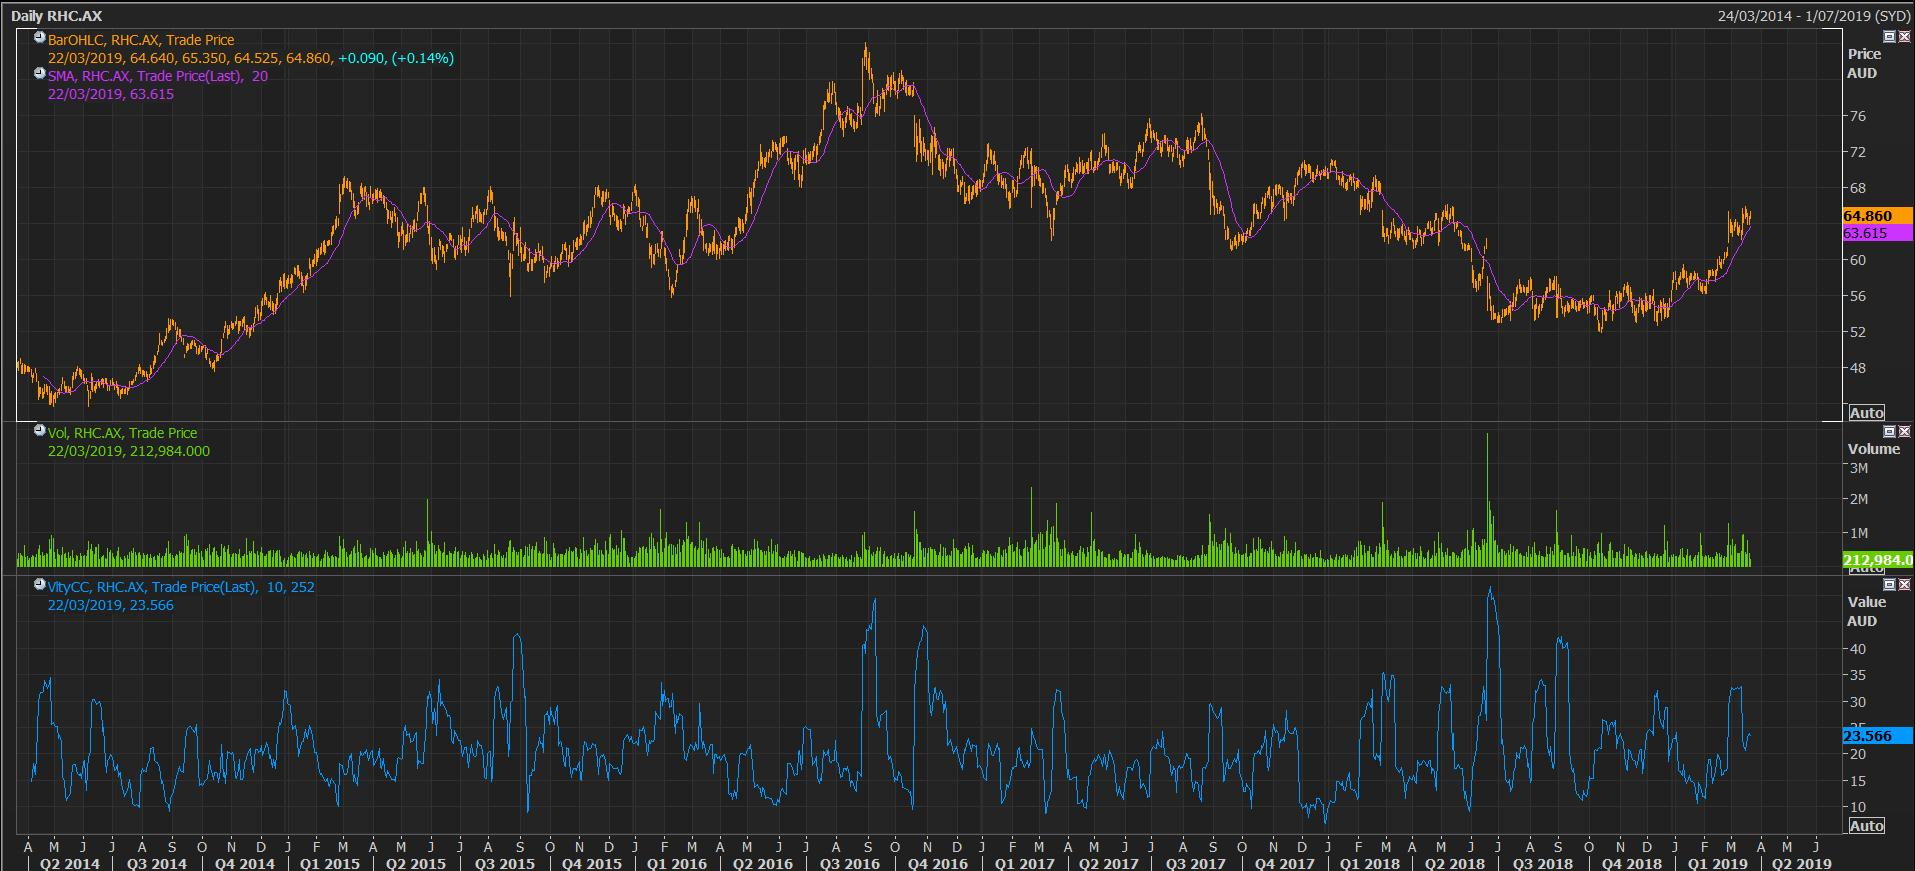 RHC Price, Volume and Volatility Chart (Source: Thomson Reuters)